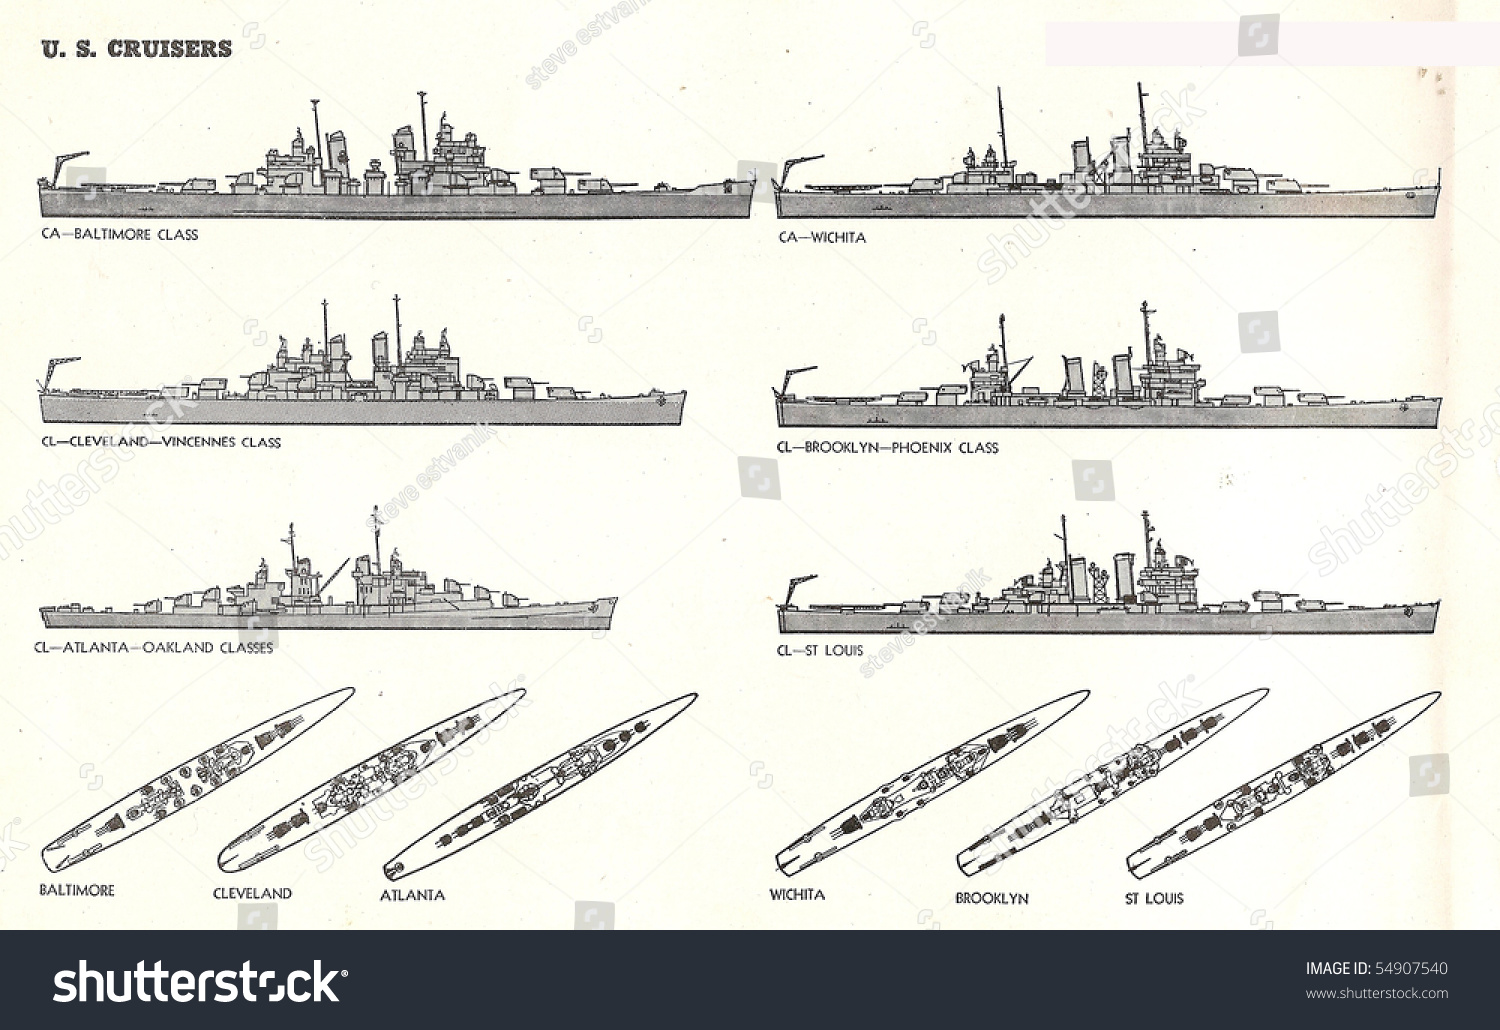 U.S. Navy Cruisers at War 1941-45, Summer 1984 (A)